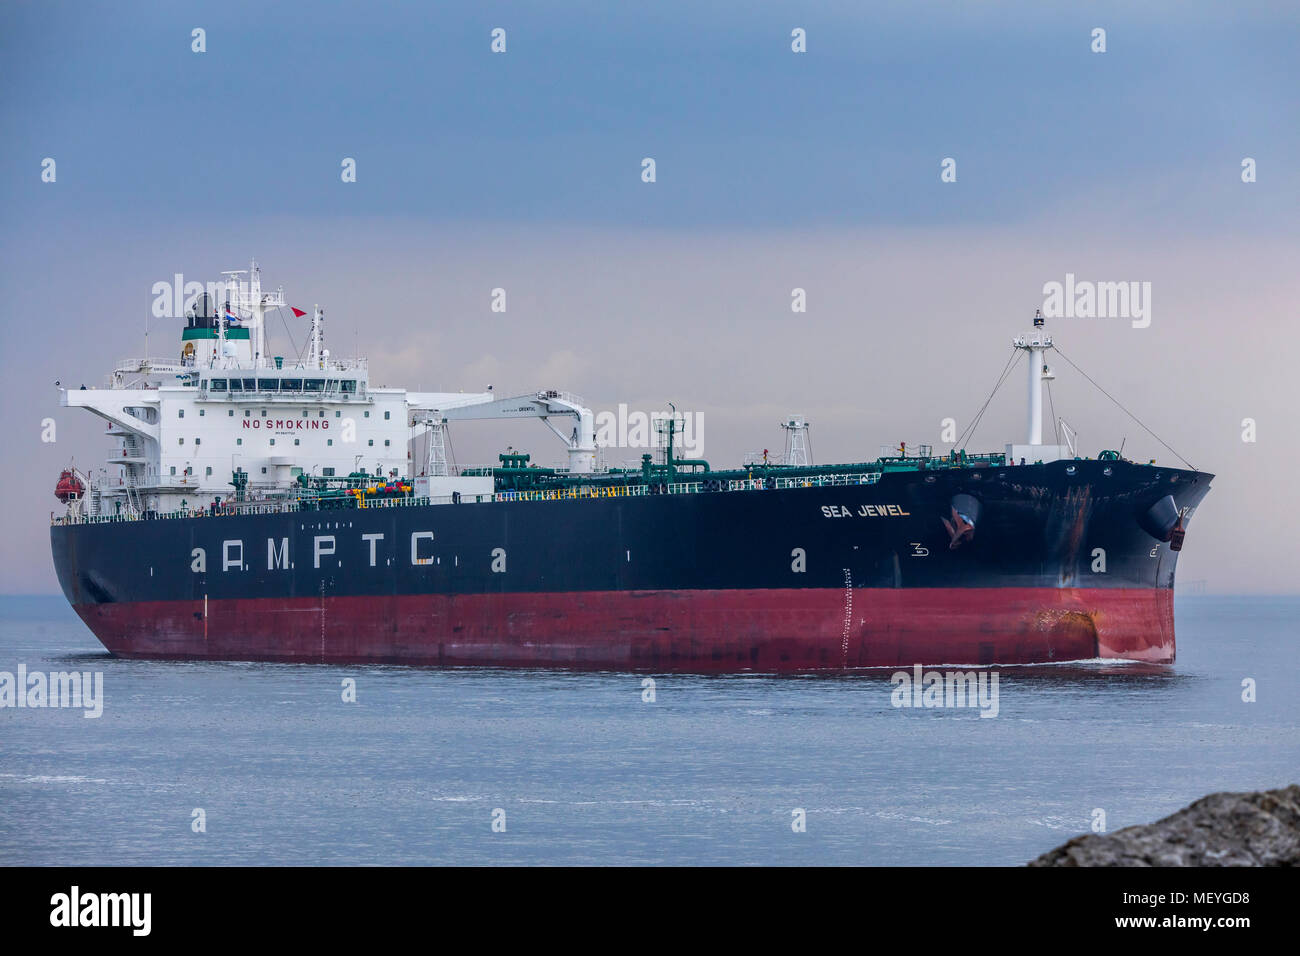 Crude oil tanker A.M.P.T.C-Sea Jewel, entering the port of Ijmuiden, in North Holland, Netherlands, - Stock Image